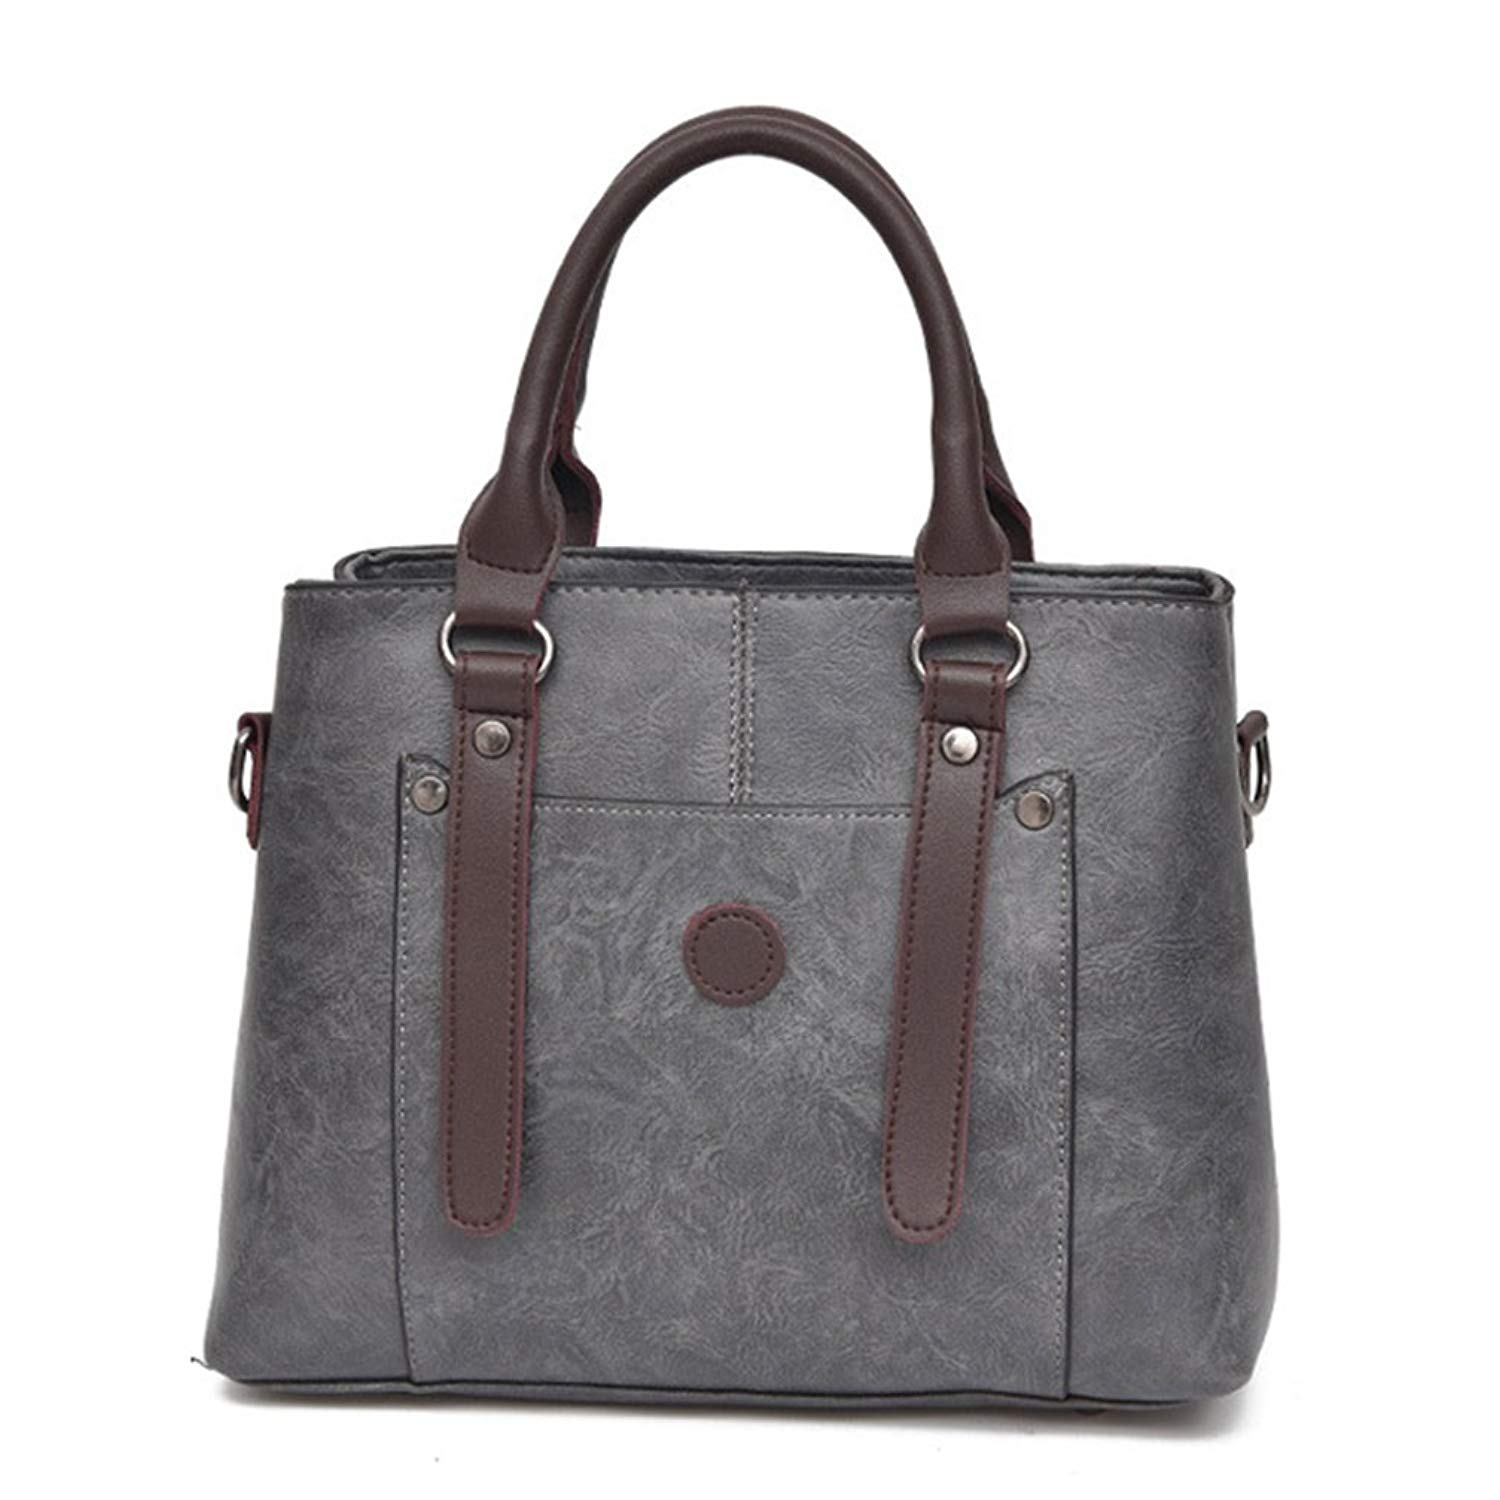 Guess Outlet Handbags Find